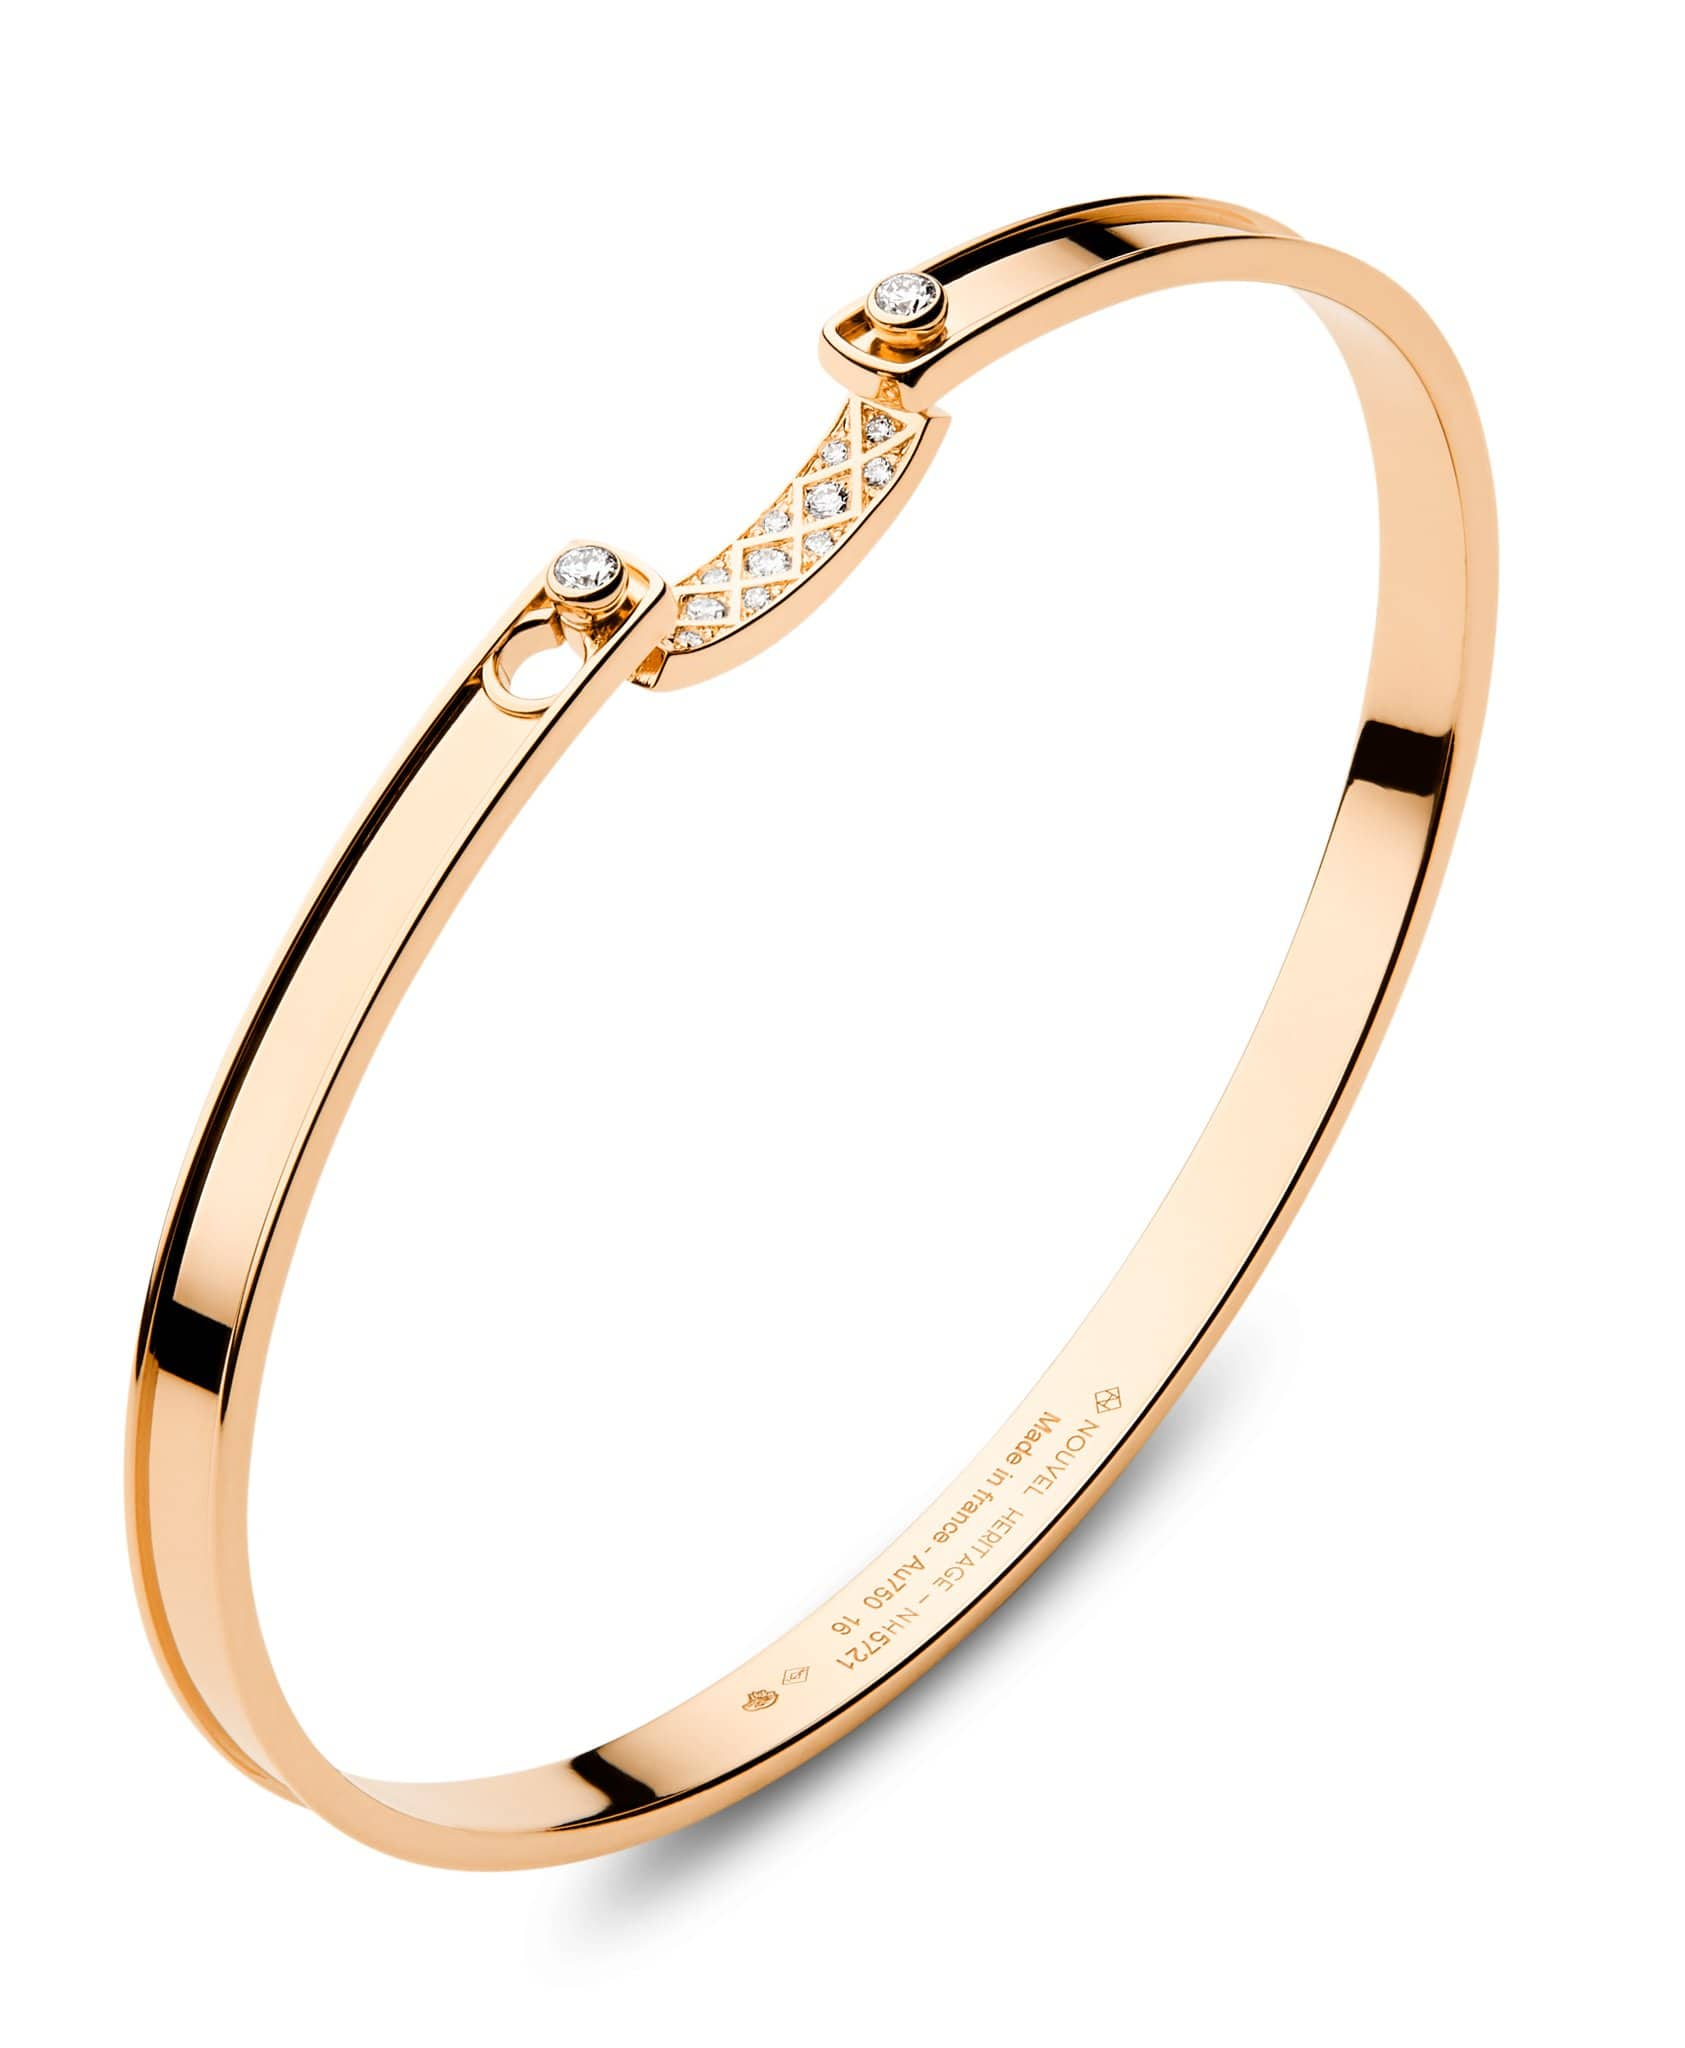 Parisian Stroll Mood Bangle: Discover Luxury Fine Jewelry | Nouvel Heritage || Rose Gold